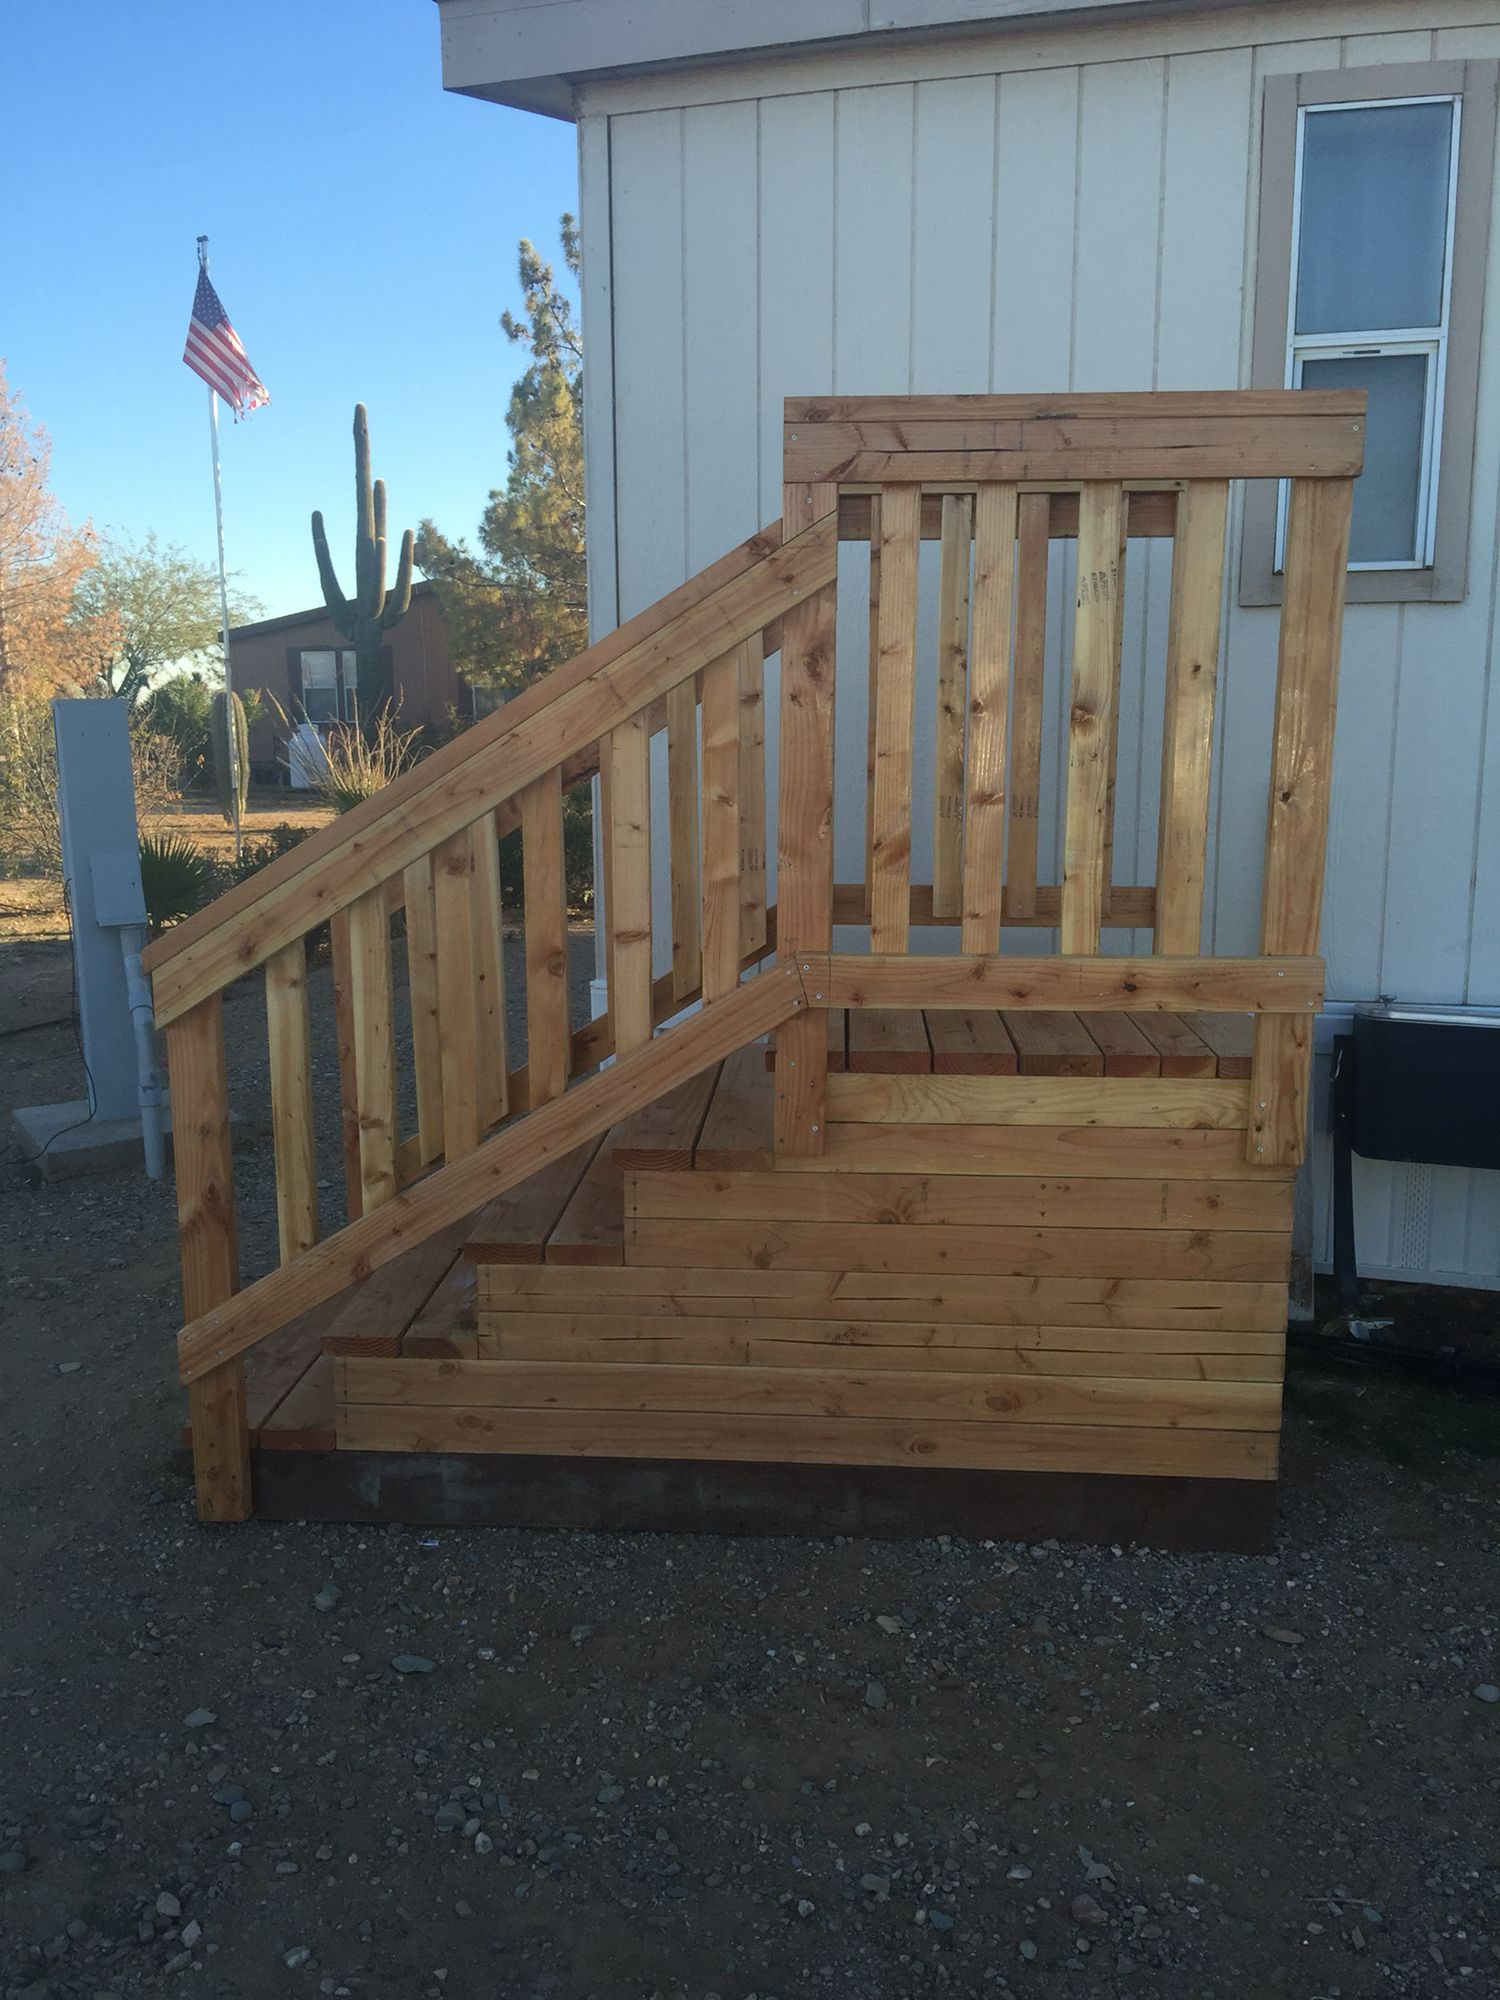 Custom steps for mobile home. | BAD AZ WOODWORKS in 2018 | Pinterest on stairs for log cabins, stairs for condo, stairs for windows, stairs for tight spaces, stairs for rv's, stairs for buildings, stairs for cottages, stairs for decks, stairs for above ground pools, stairs for boats, stairs for attic conversions, stairs for small homes, stairs for trailers, stairs for churches, stairs for storage, stairs for manufacturing, stairs for houses, stairs for small spaces, stairs for sheds, stairs for trucks,